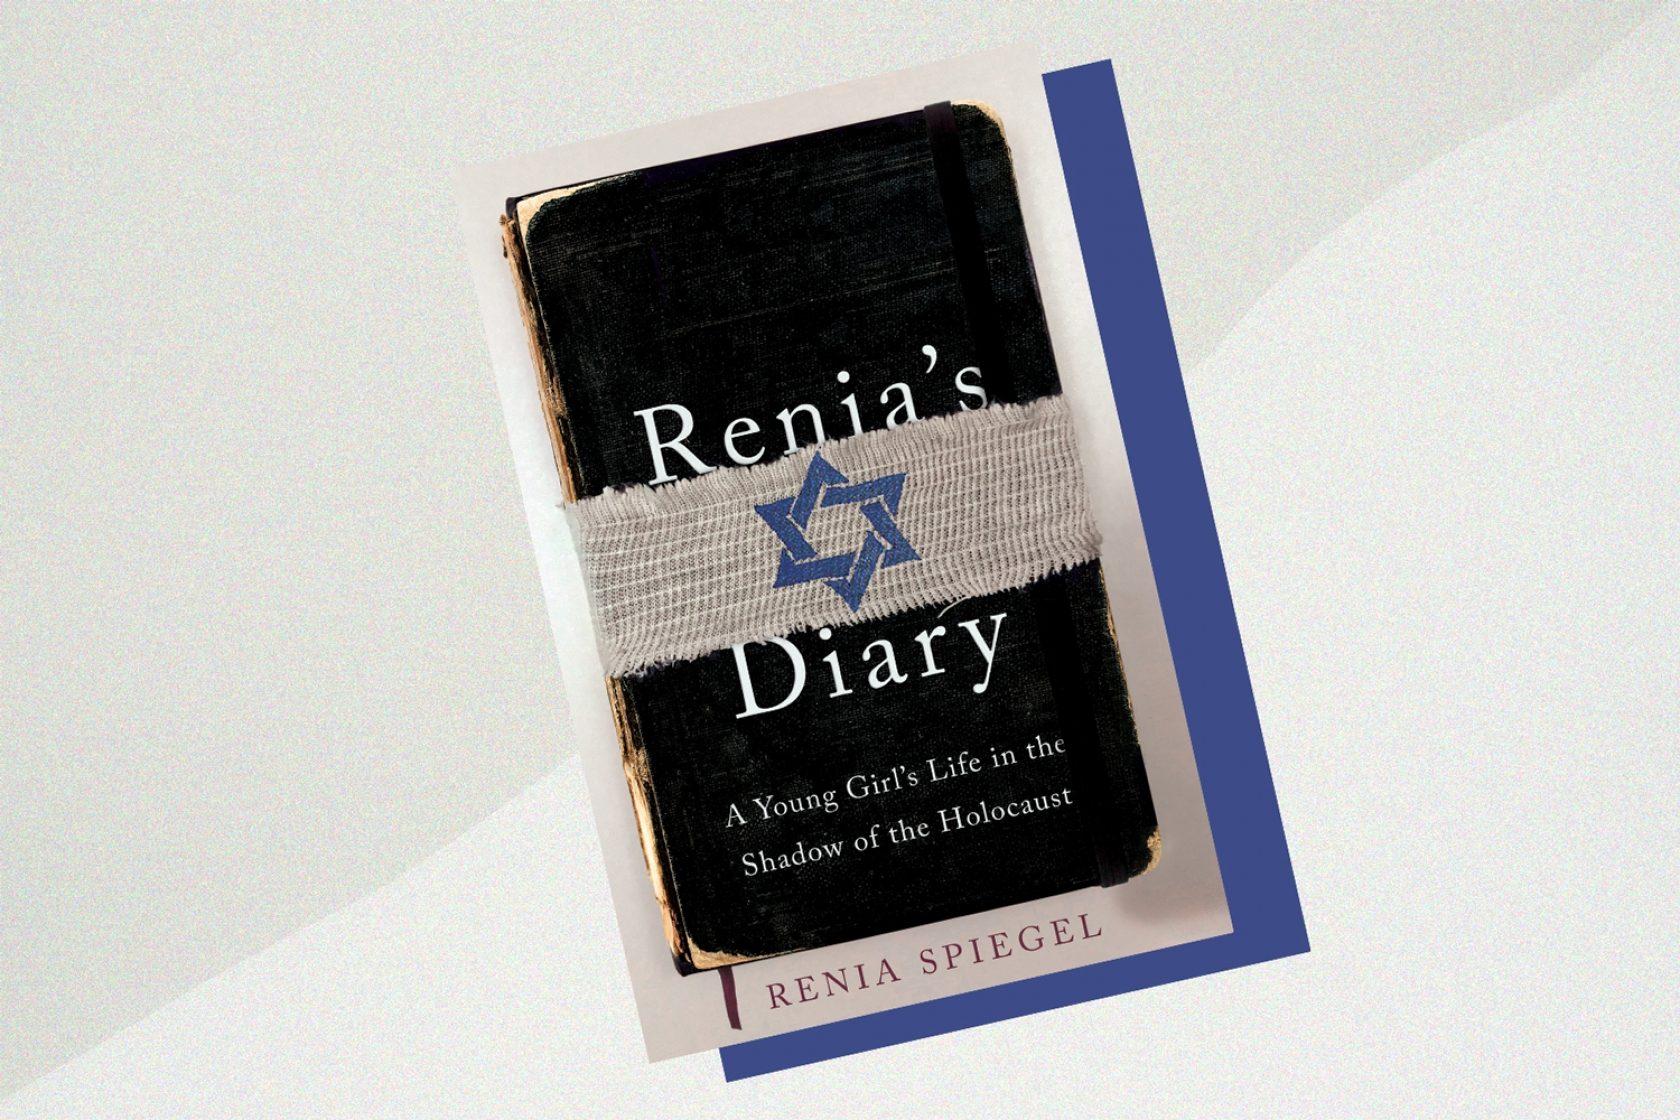 Badspiegel Jolled Renia Spiegel Polish Anne Frank S Secret Diary To Be Published